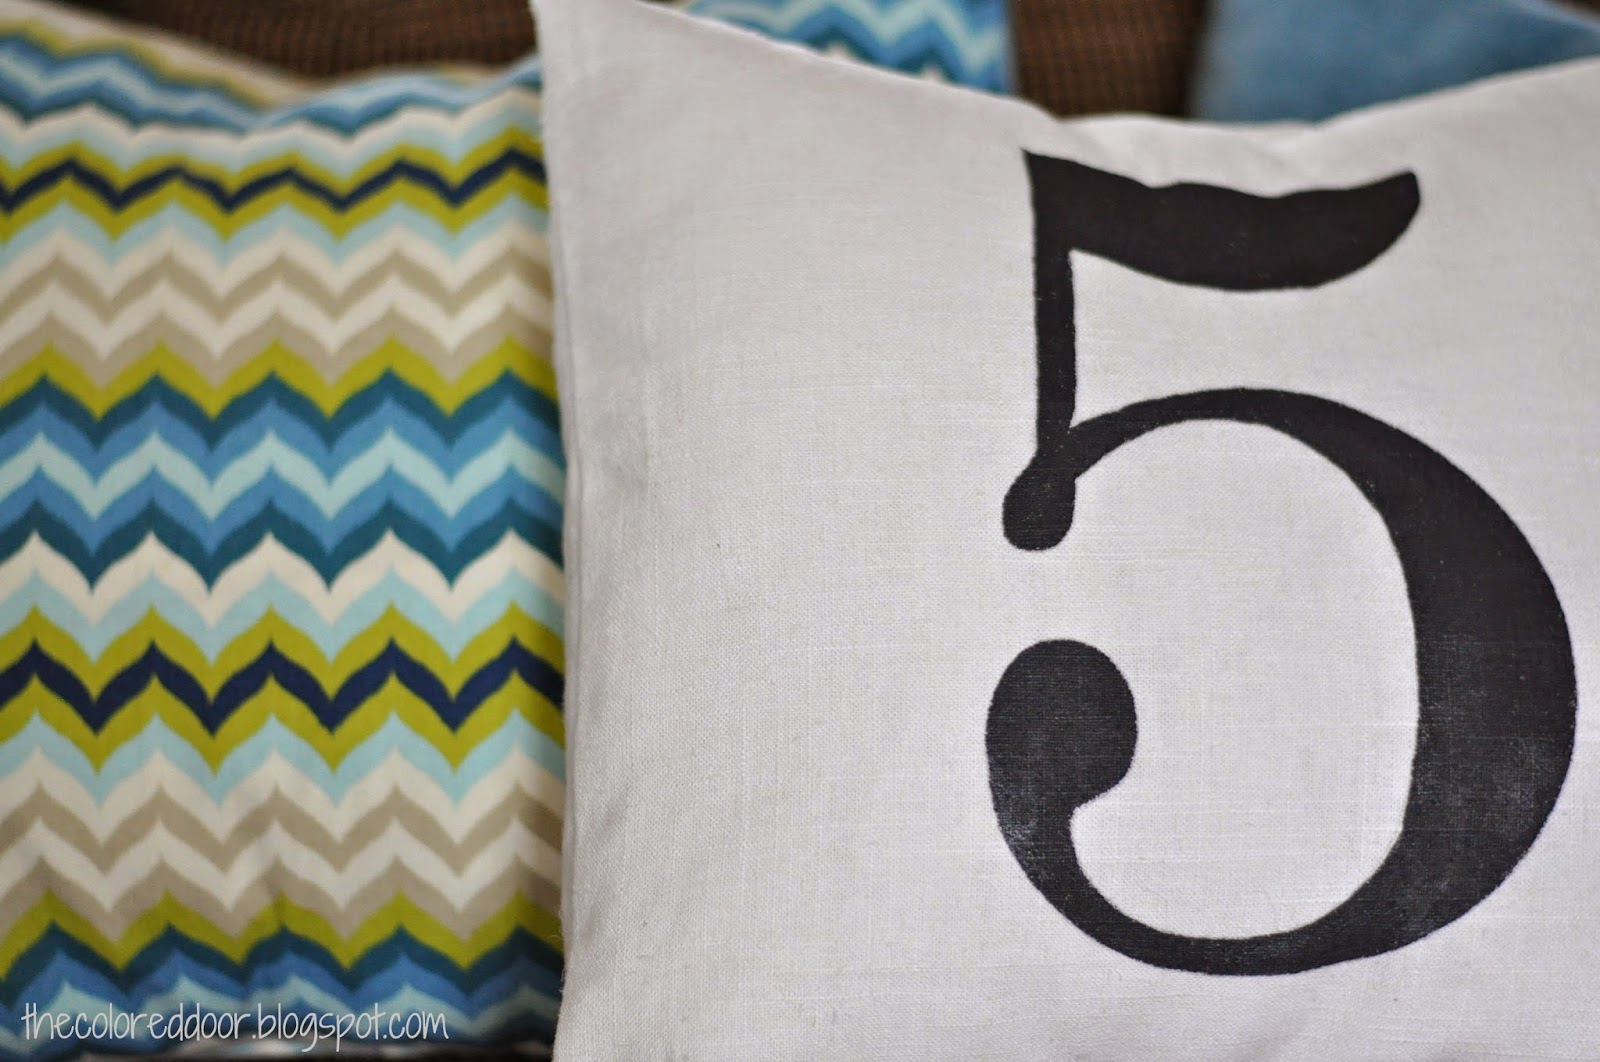 DIY painted no. pillow - the colored door